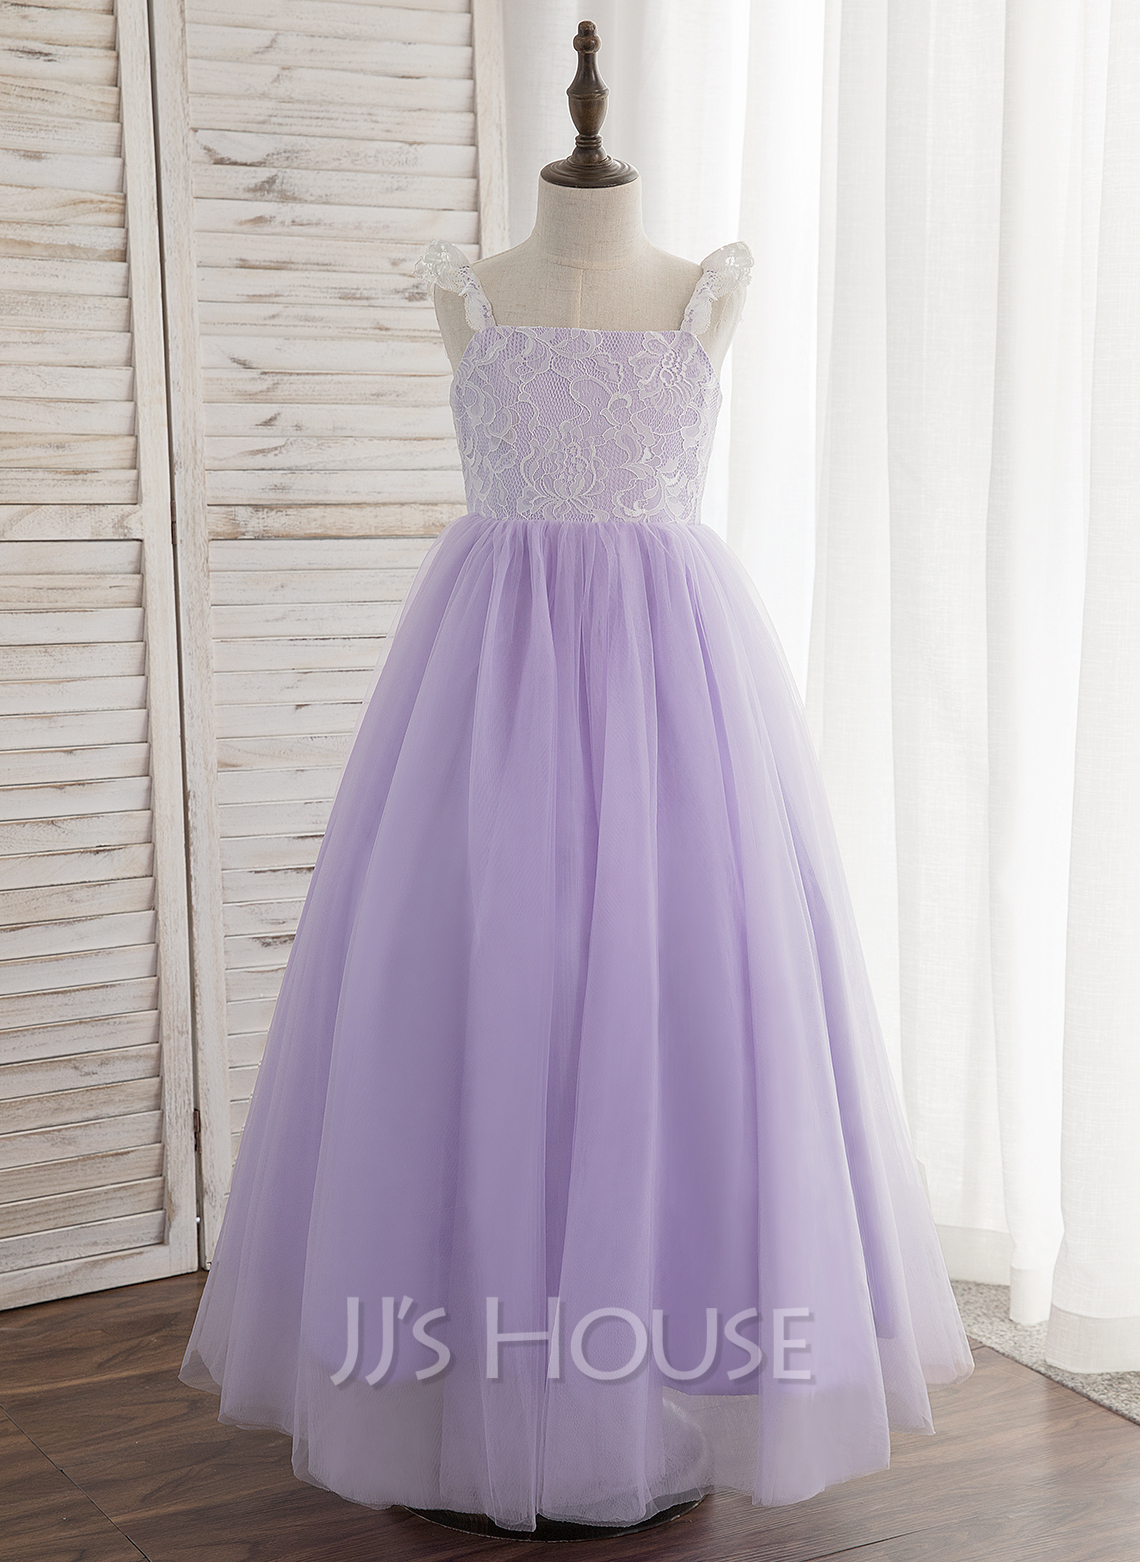 A-Line/Princess Ankle-length Flower Girl Dress - Tulle/Lace Sleeveless Straps